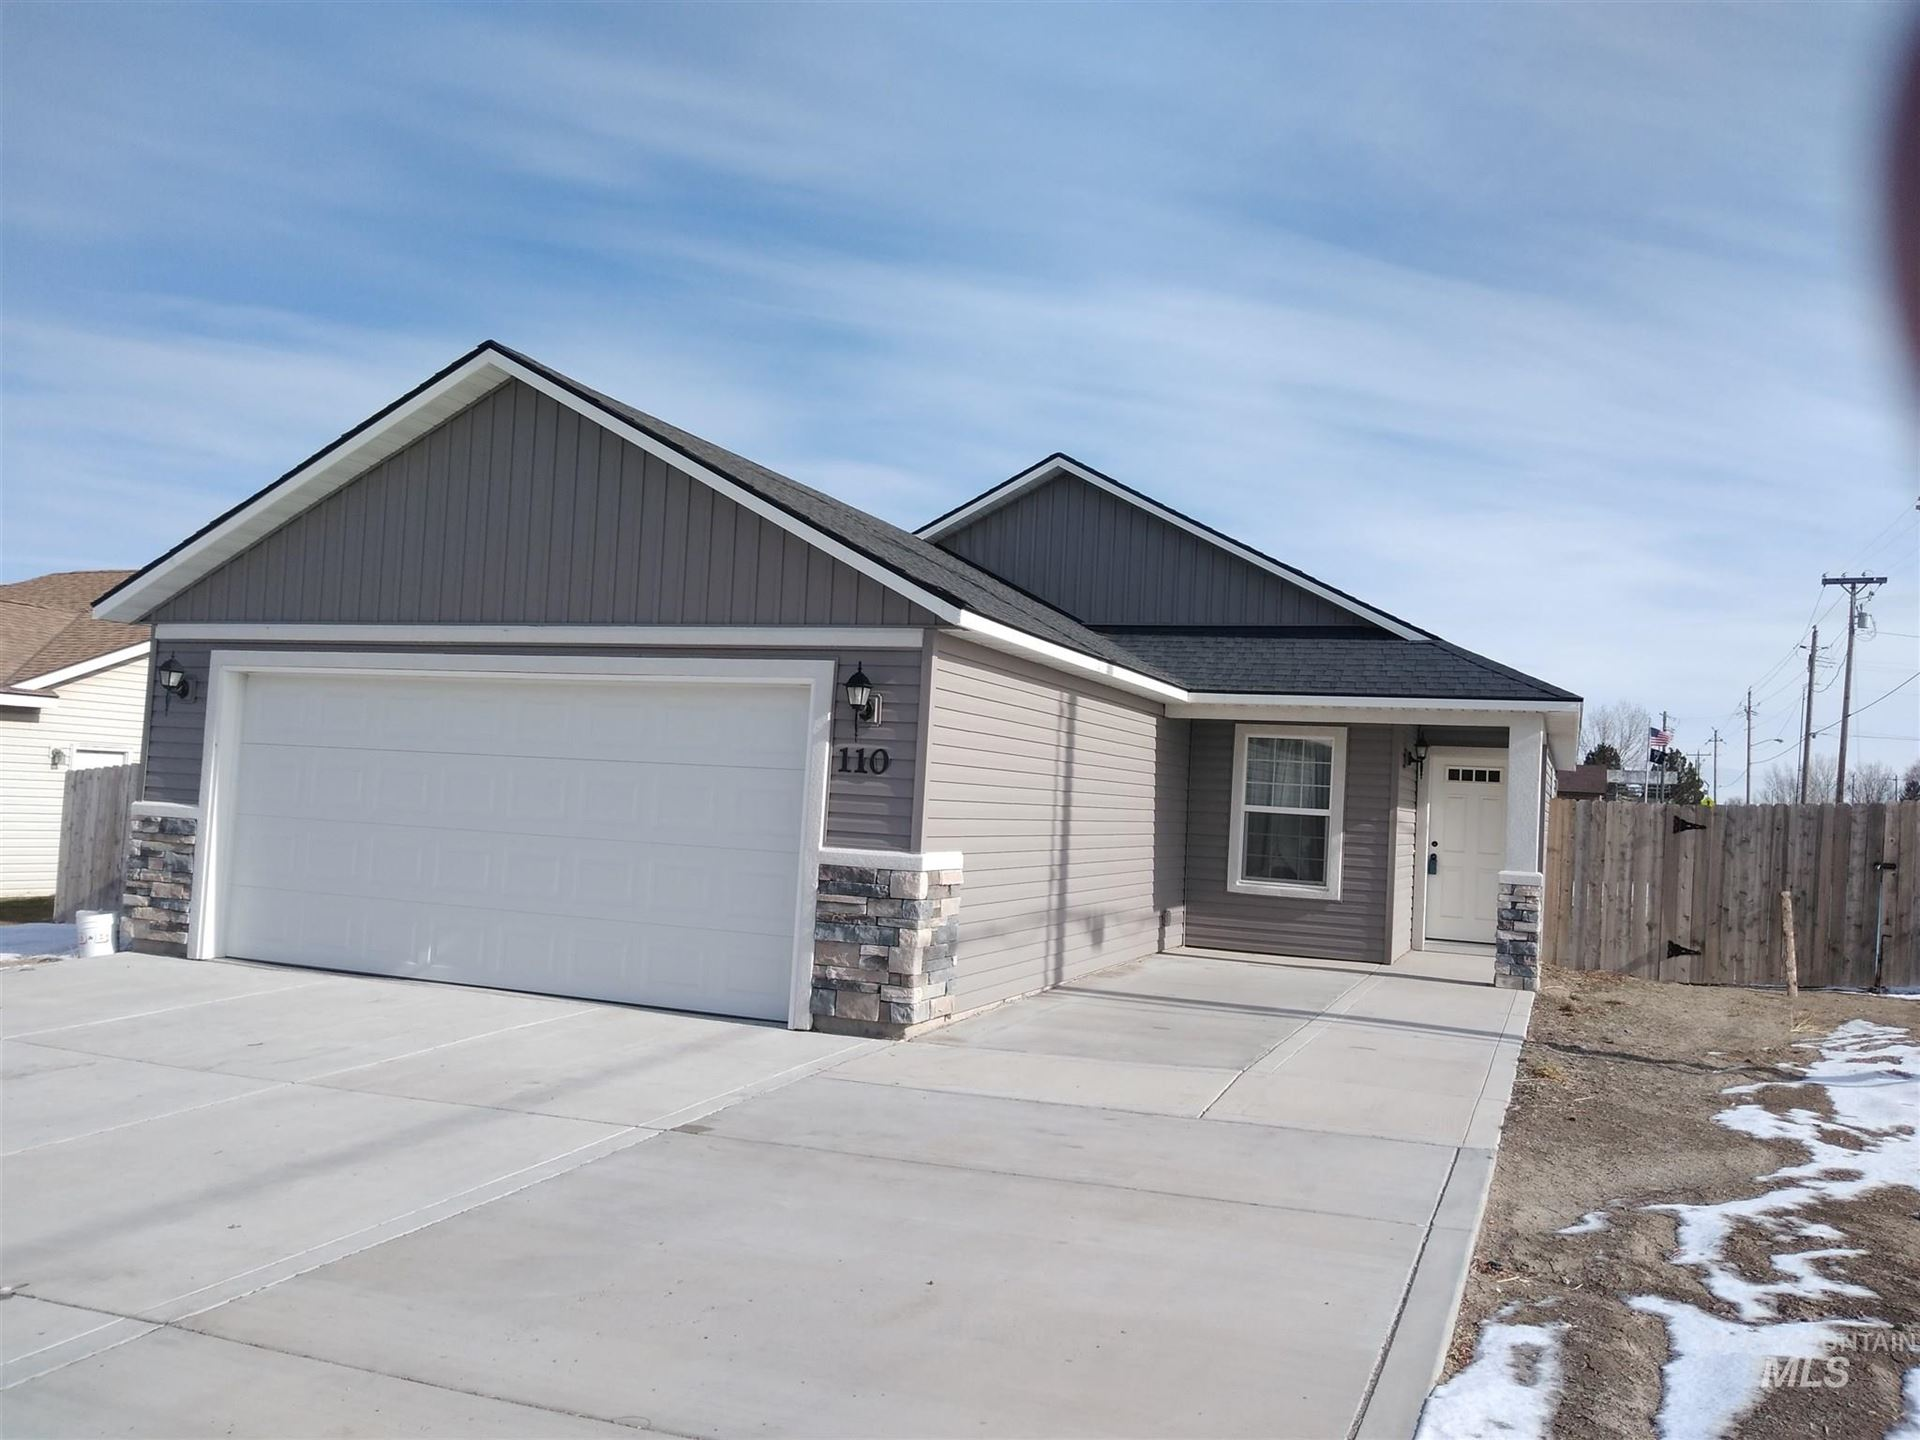 Photo of 110 Big Cedar Drive, Hansen, ID 83334 (MLS # 98791734)